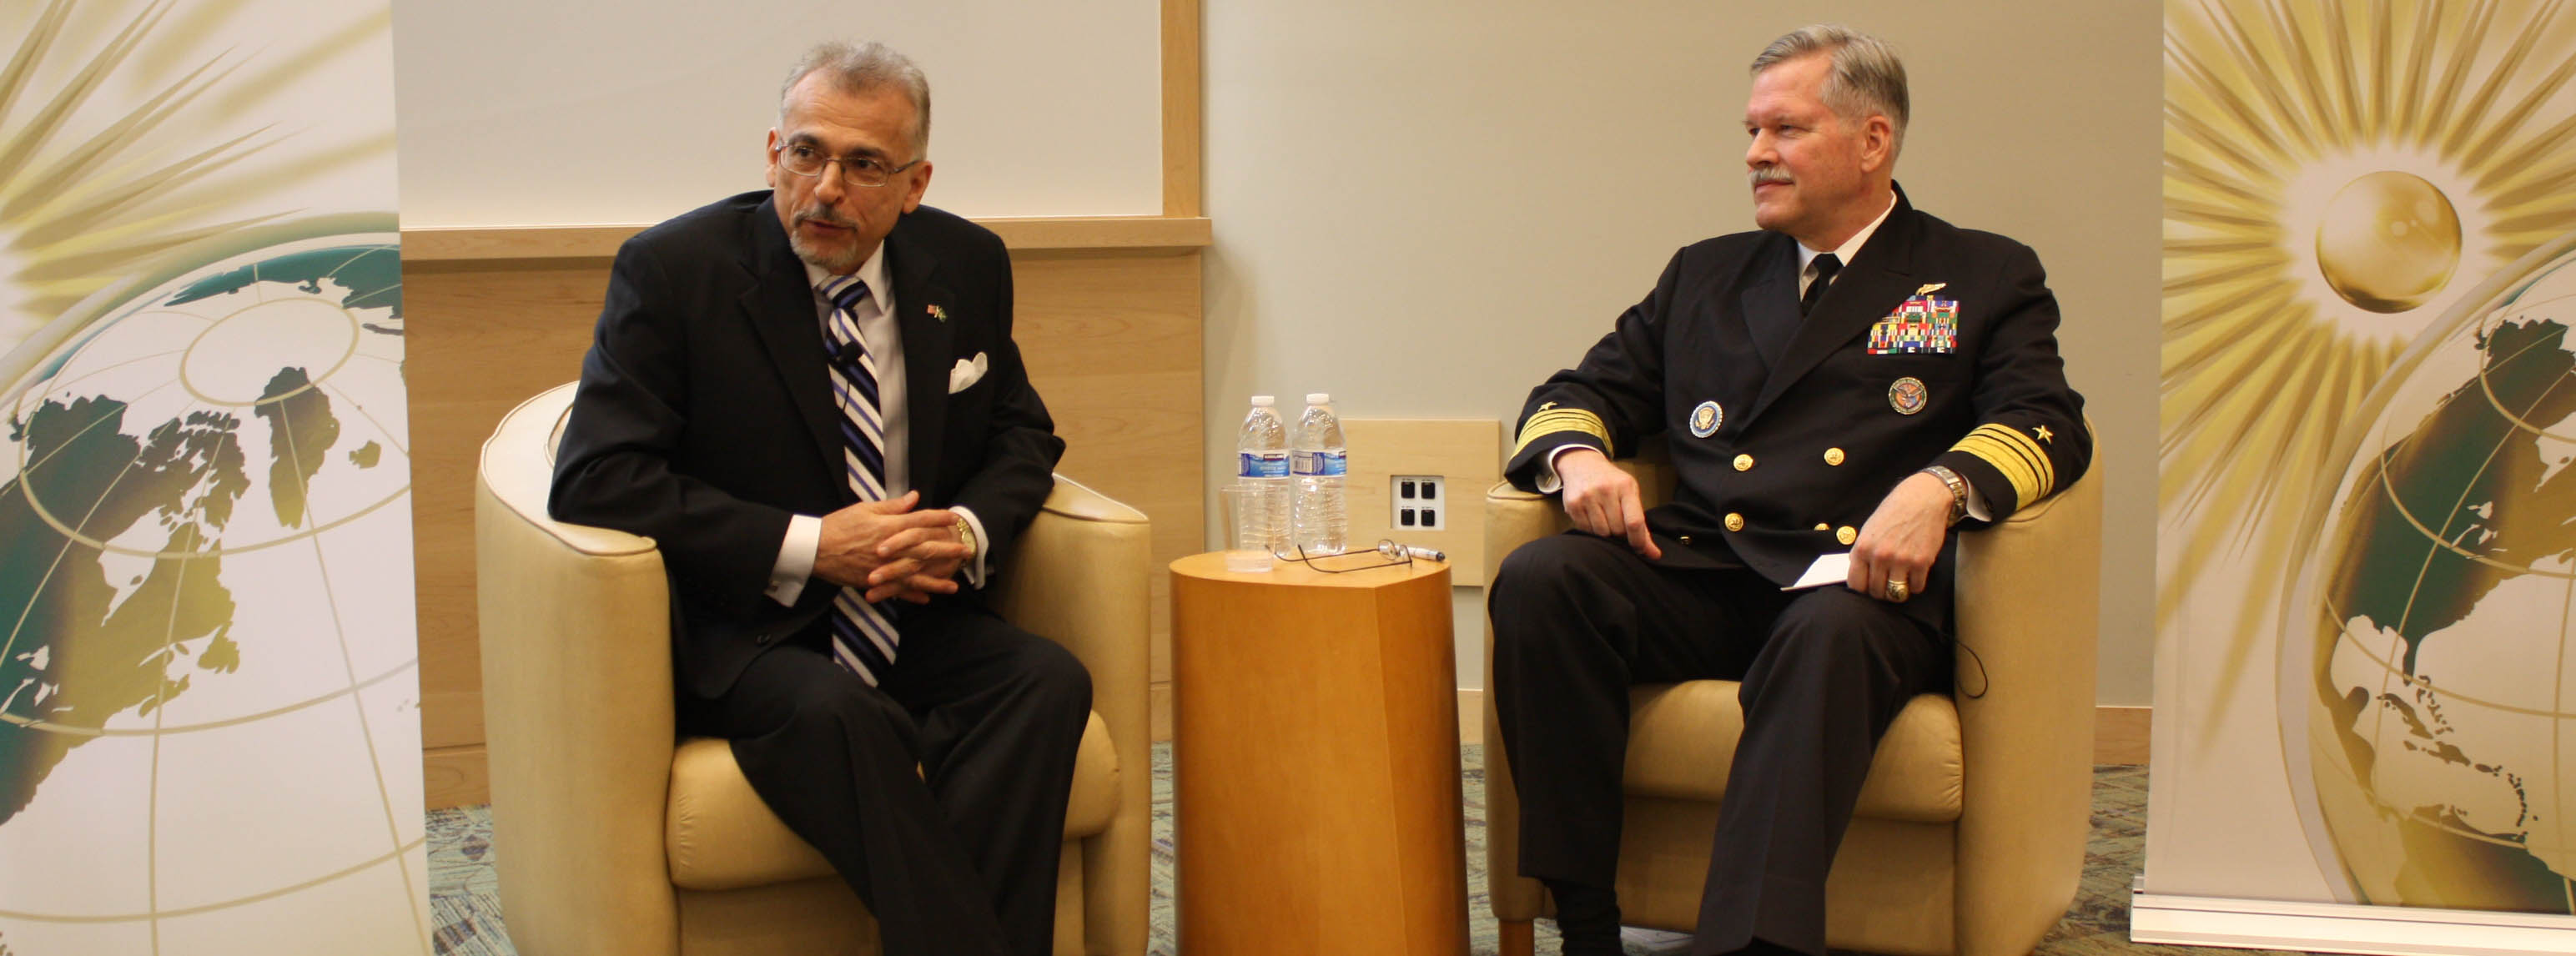 Dr. Mohsen Milani and Admiral Fox